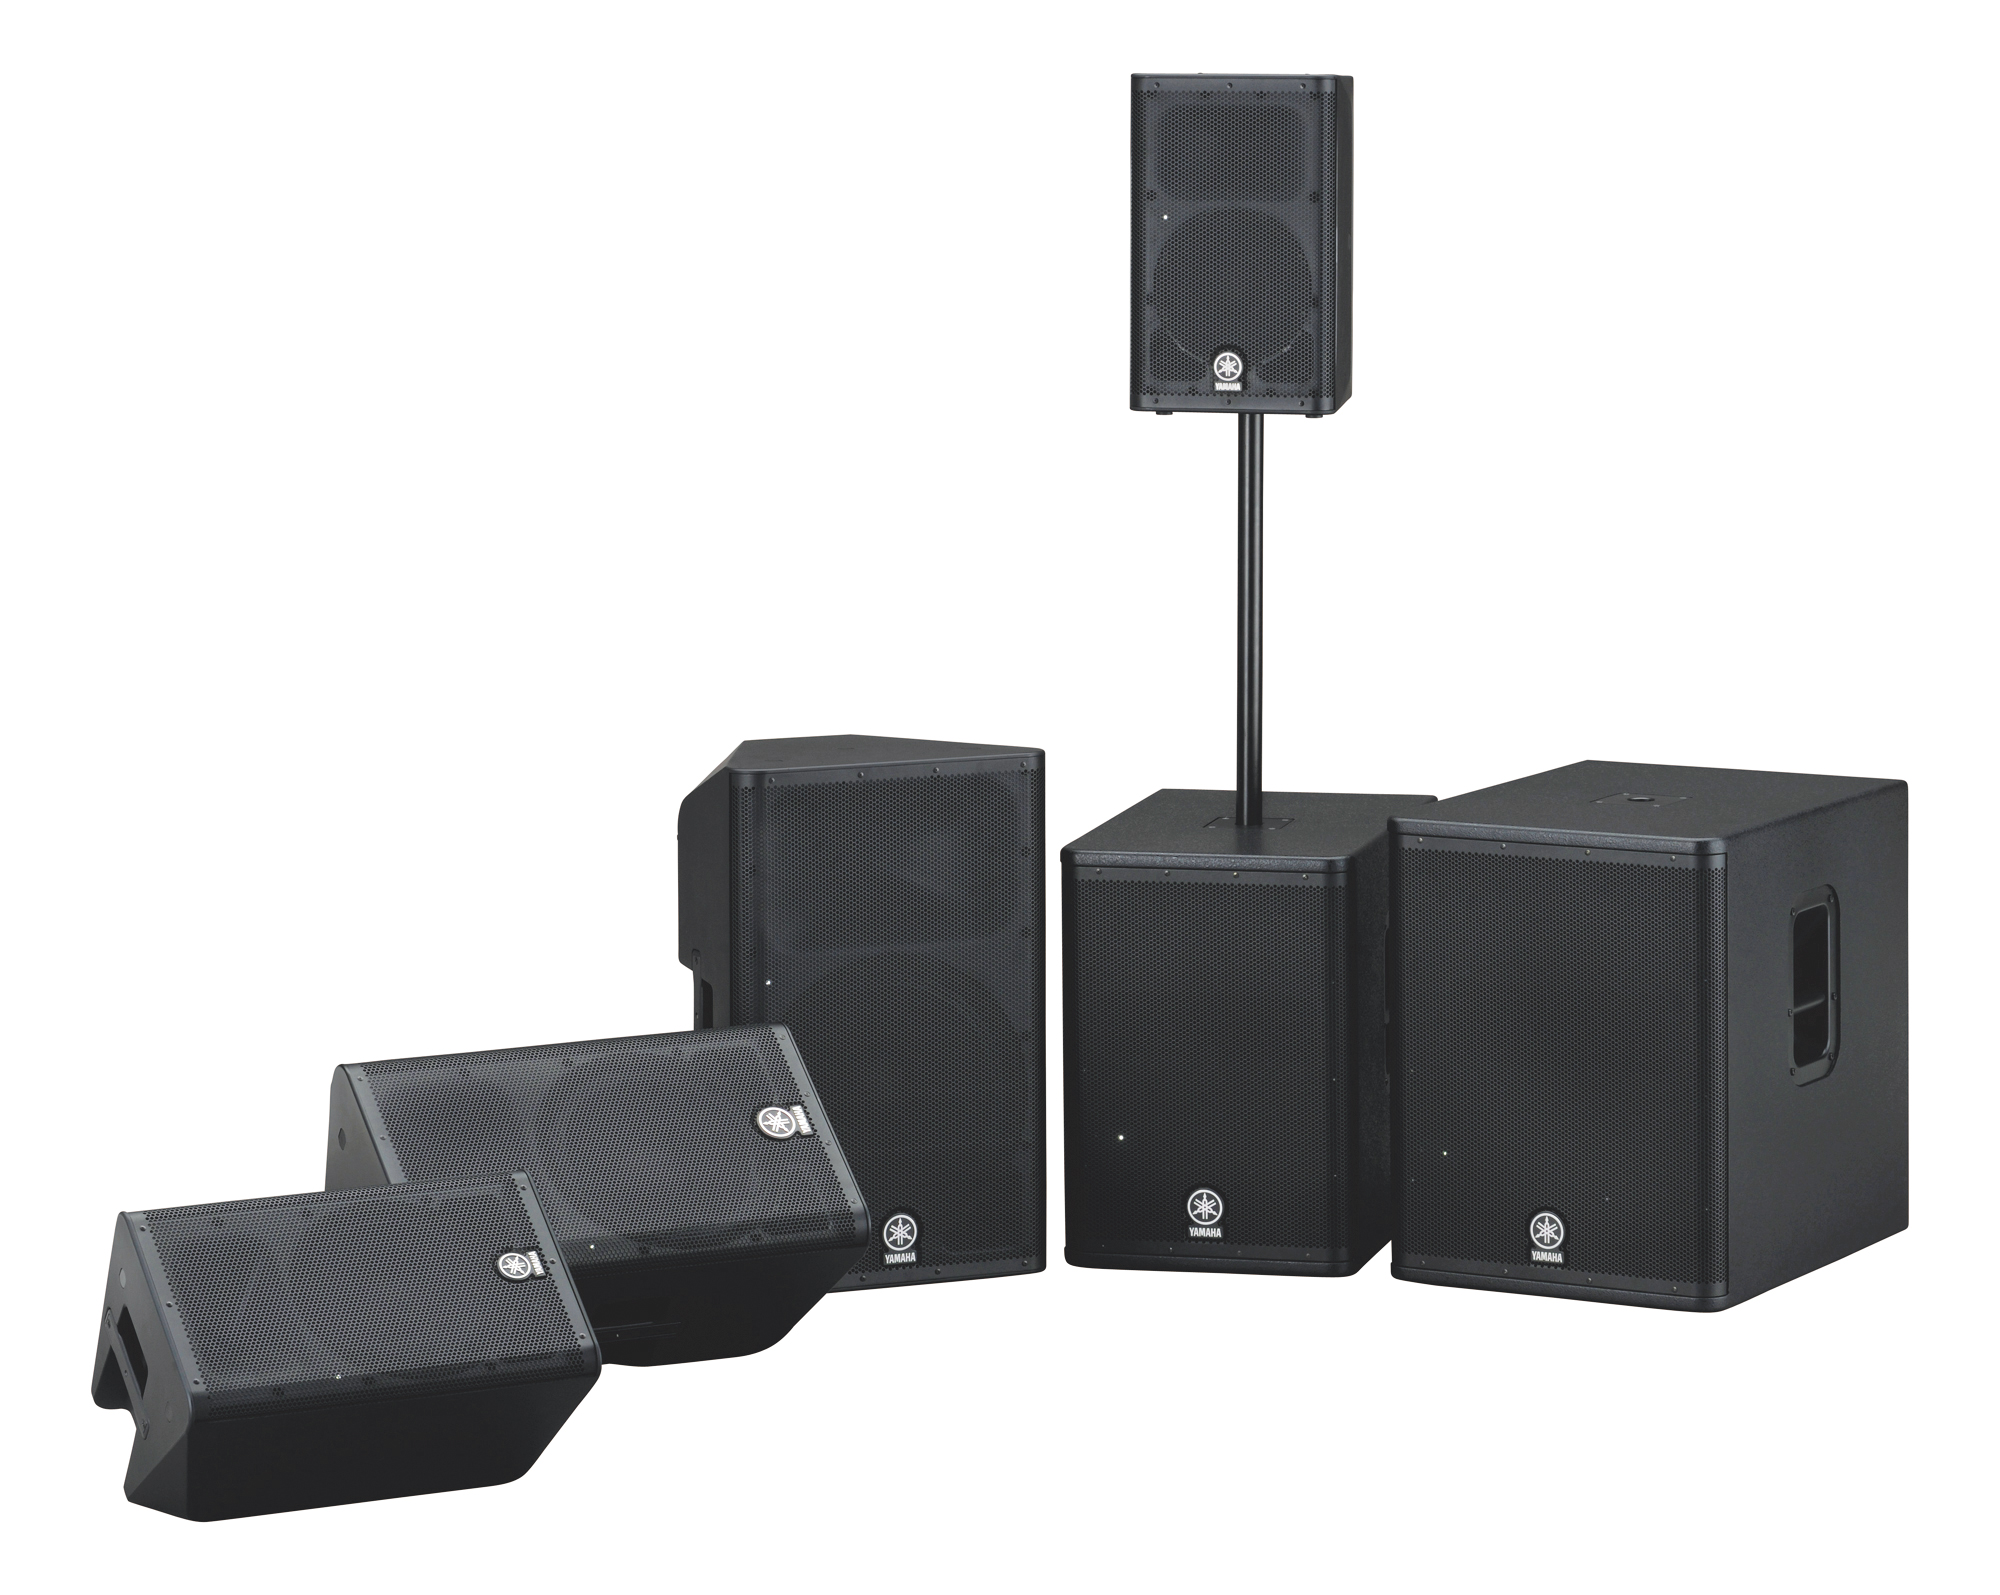 Yamaha's DXR And DXS Speakers And Subs